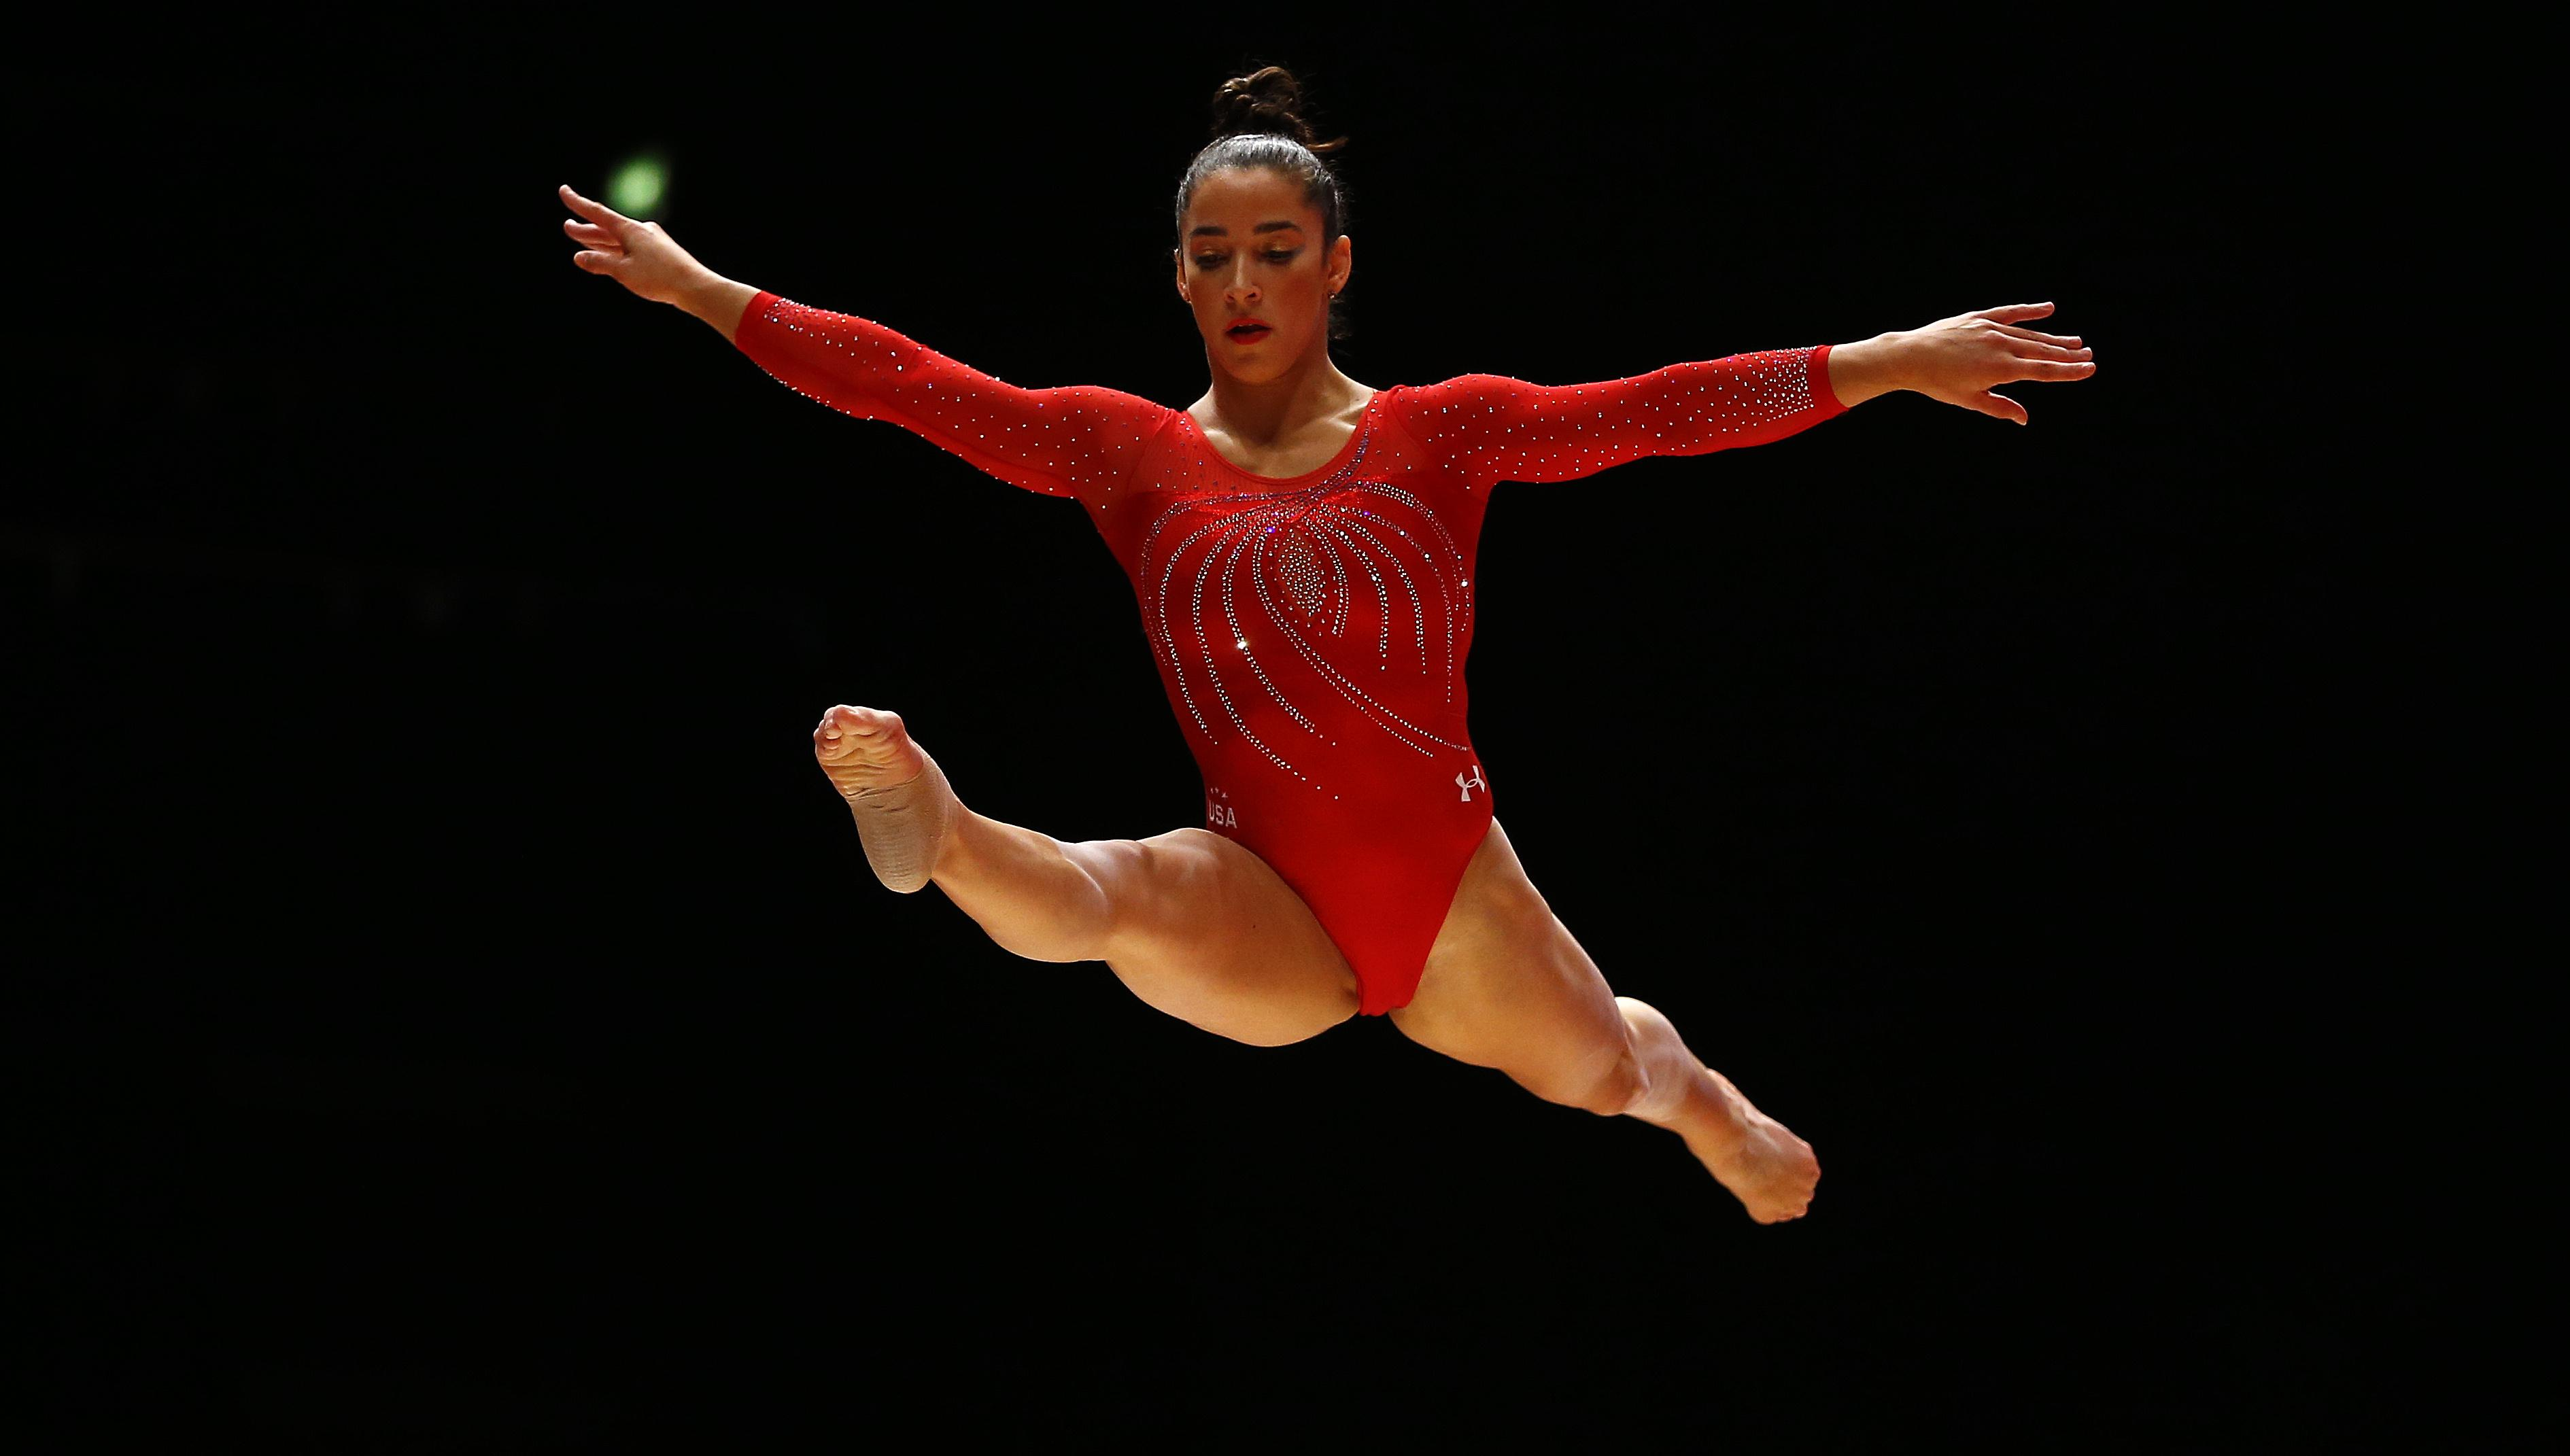 In a one and done world aly raisman gabby douglas try again three time olympic medalist aly raisman aims to make the us team again at age m4hsunfo